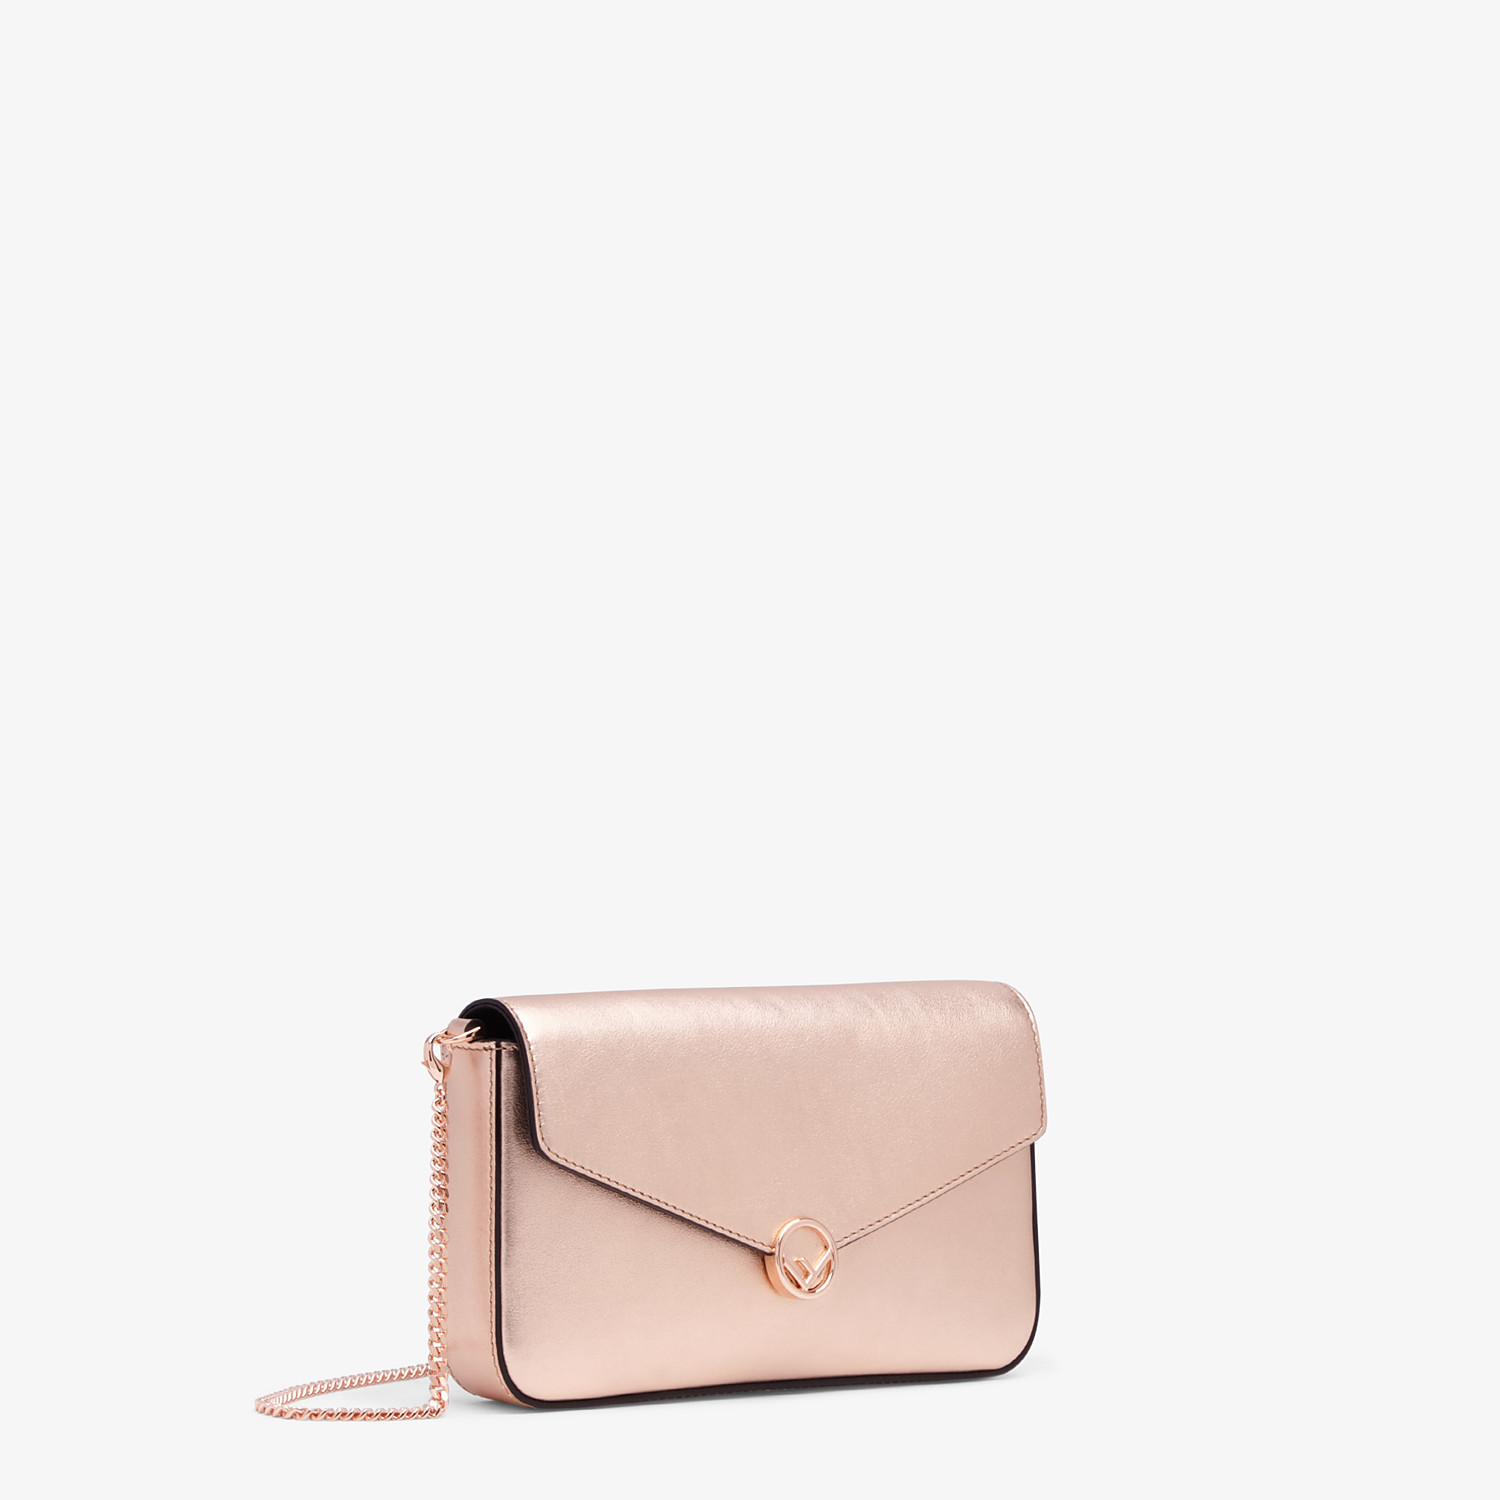 FENDI WALLET ON CHAIN WITH POUCHES - Pink leather mini-bag - view 3 detail